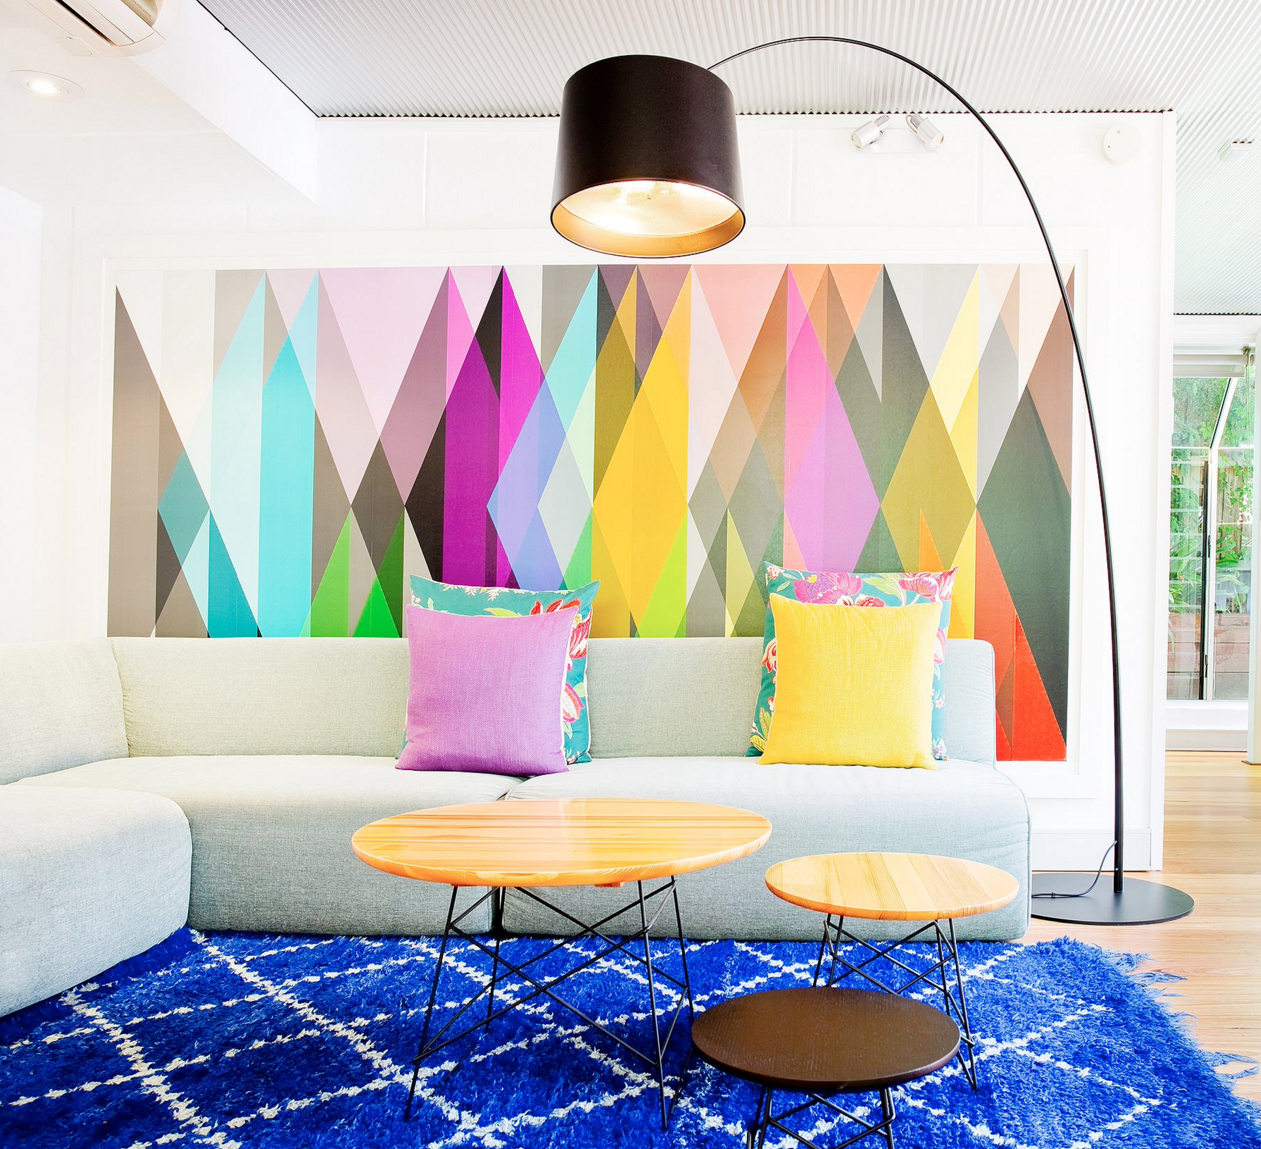 25 Dazzling Geometric Walls For The Modern Home – Freshome Within Preferred Contemporary Geometric Wall Decor (View 9 of 20)